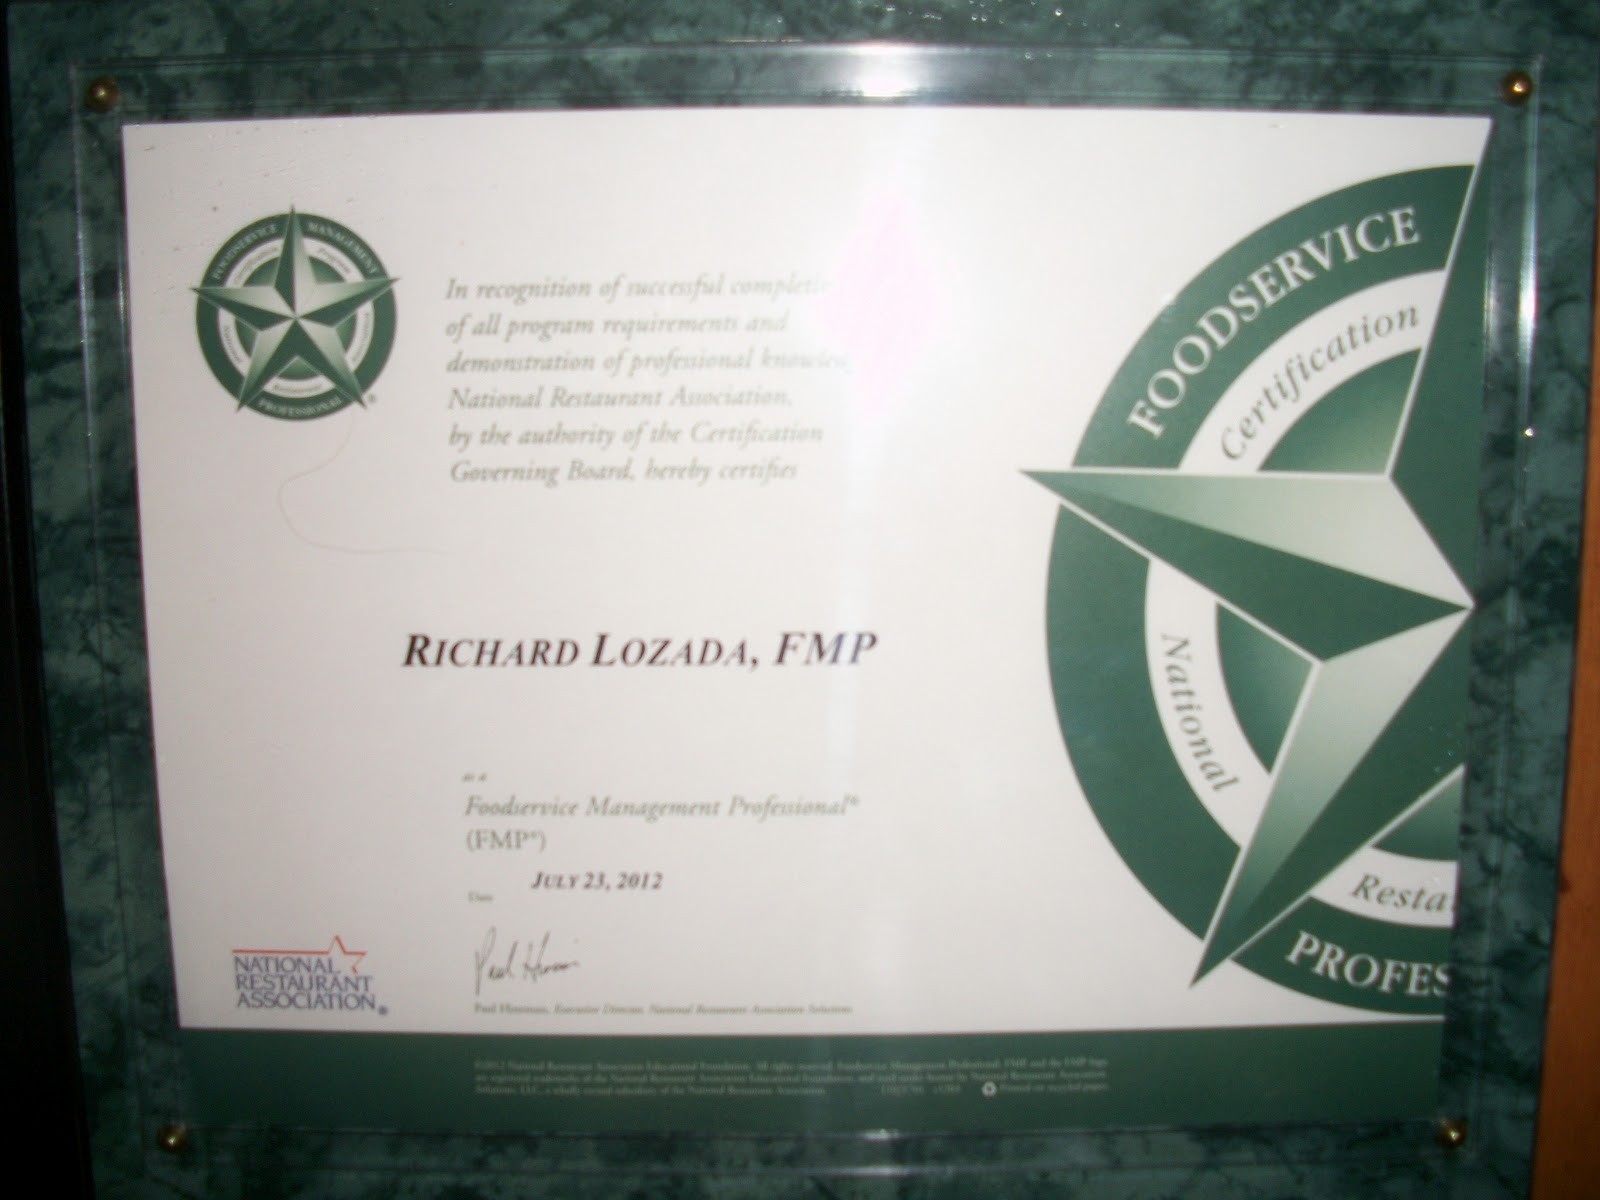 Be the benchmark lozada certified fmp richard lozada westminster place has been certified in the national restaurant association solutions foodservice management professional fmp 1betcityfo Gallery